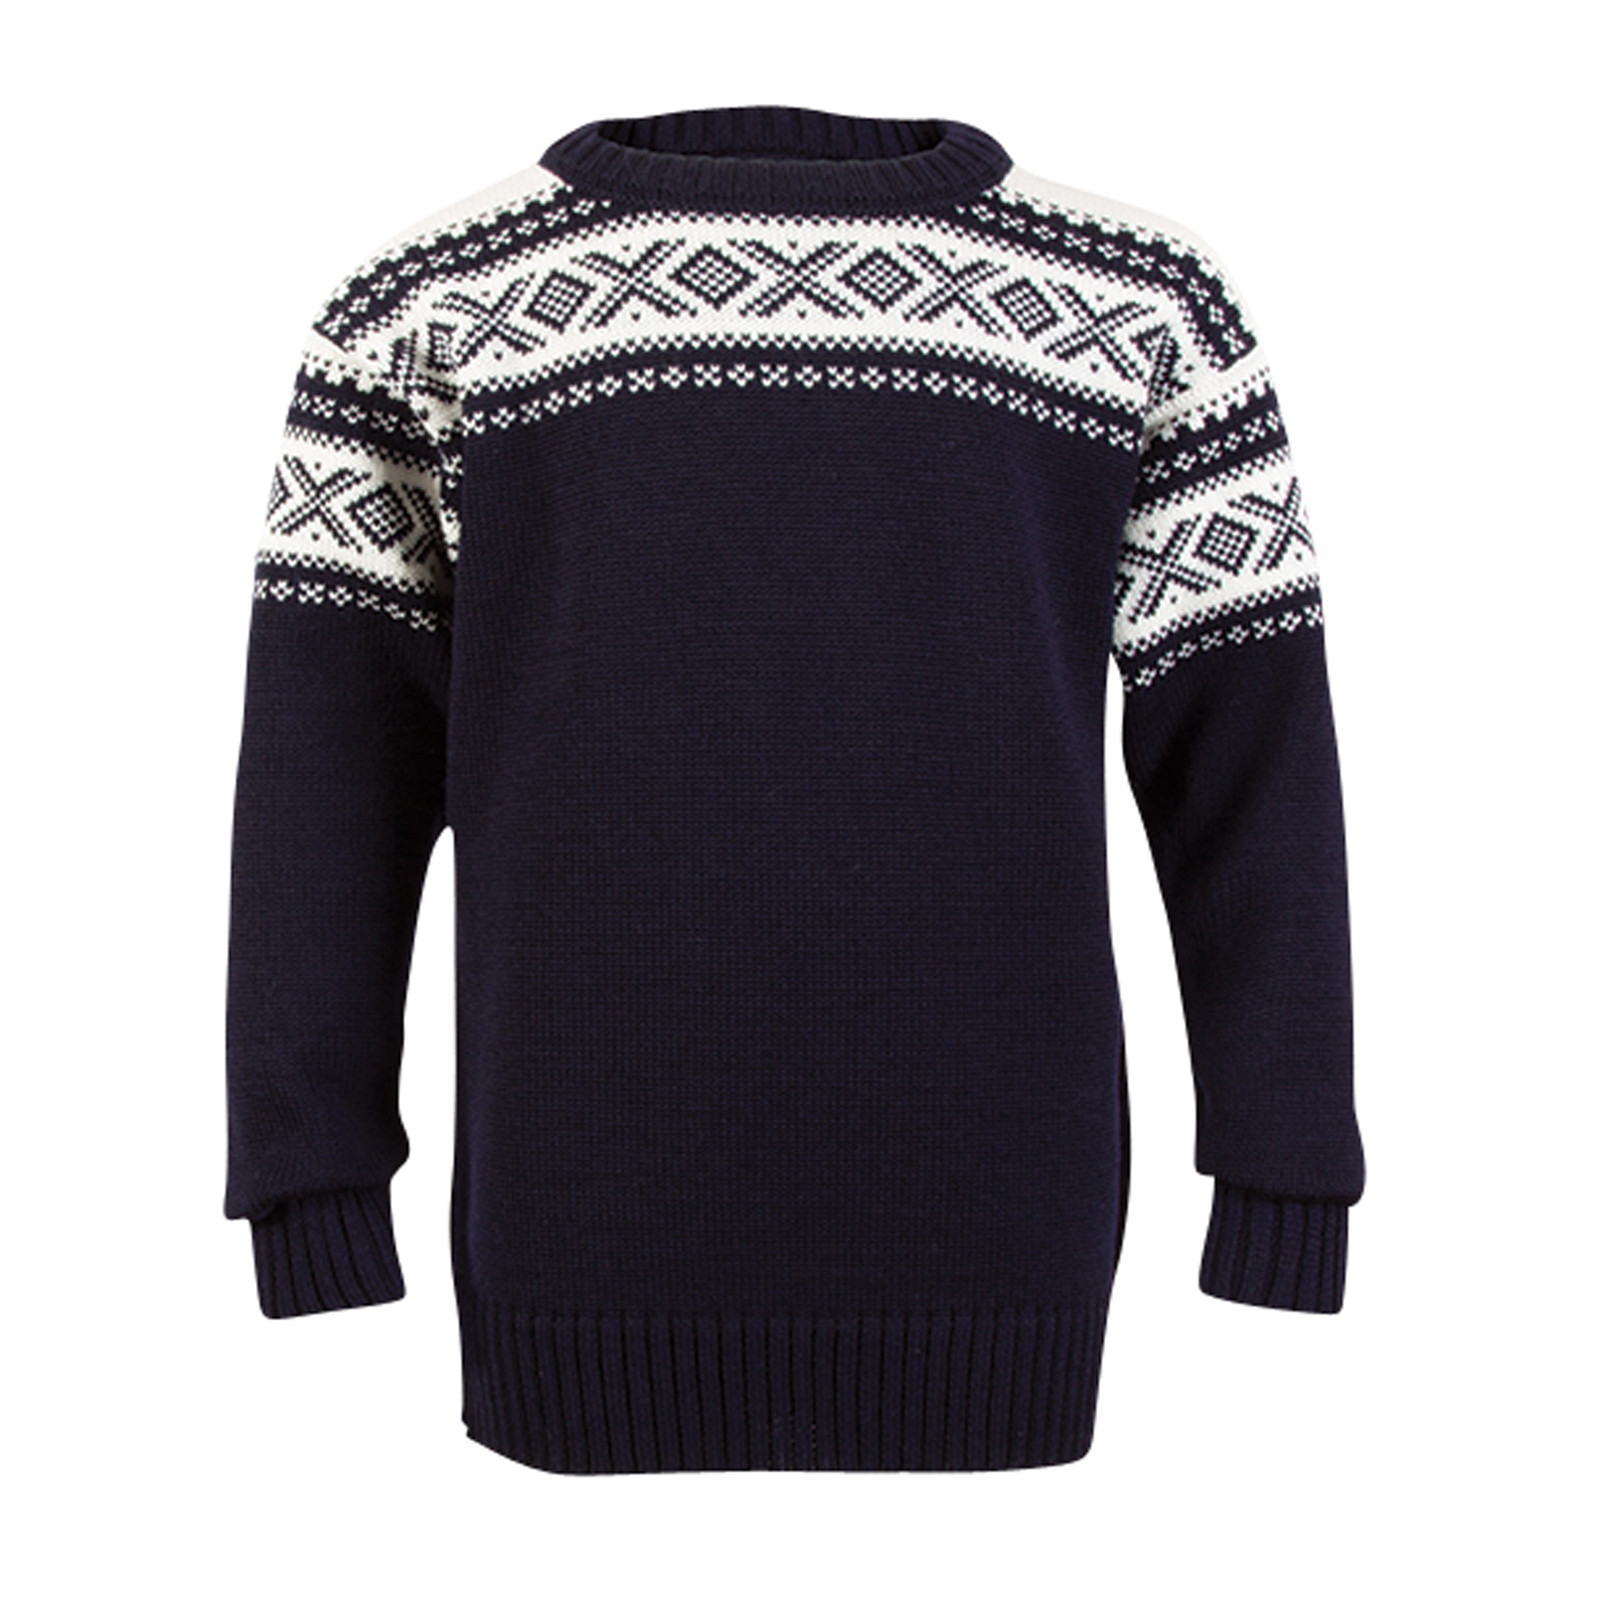 Dale of Norway, Cortina childrens sweater in Navy/Off White, 92991-C